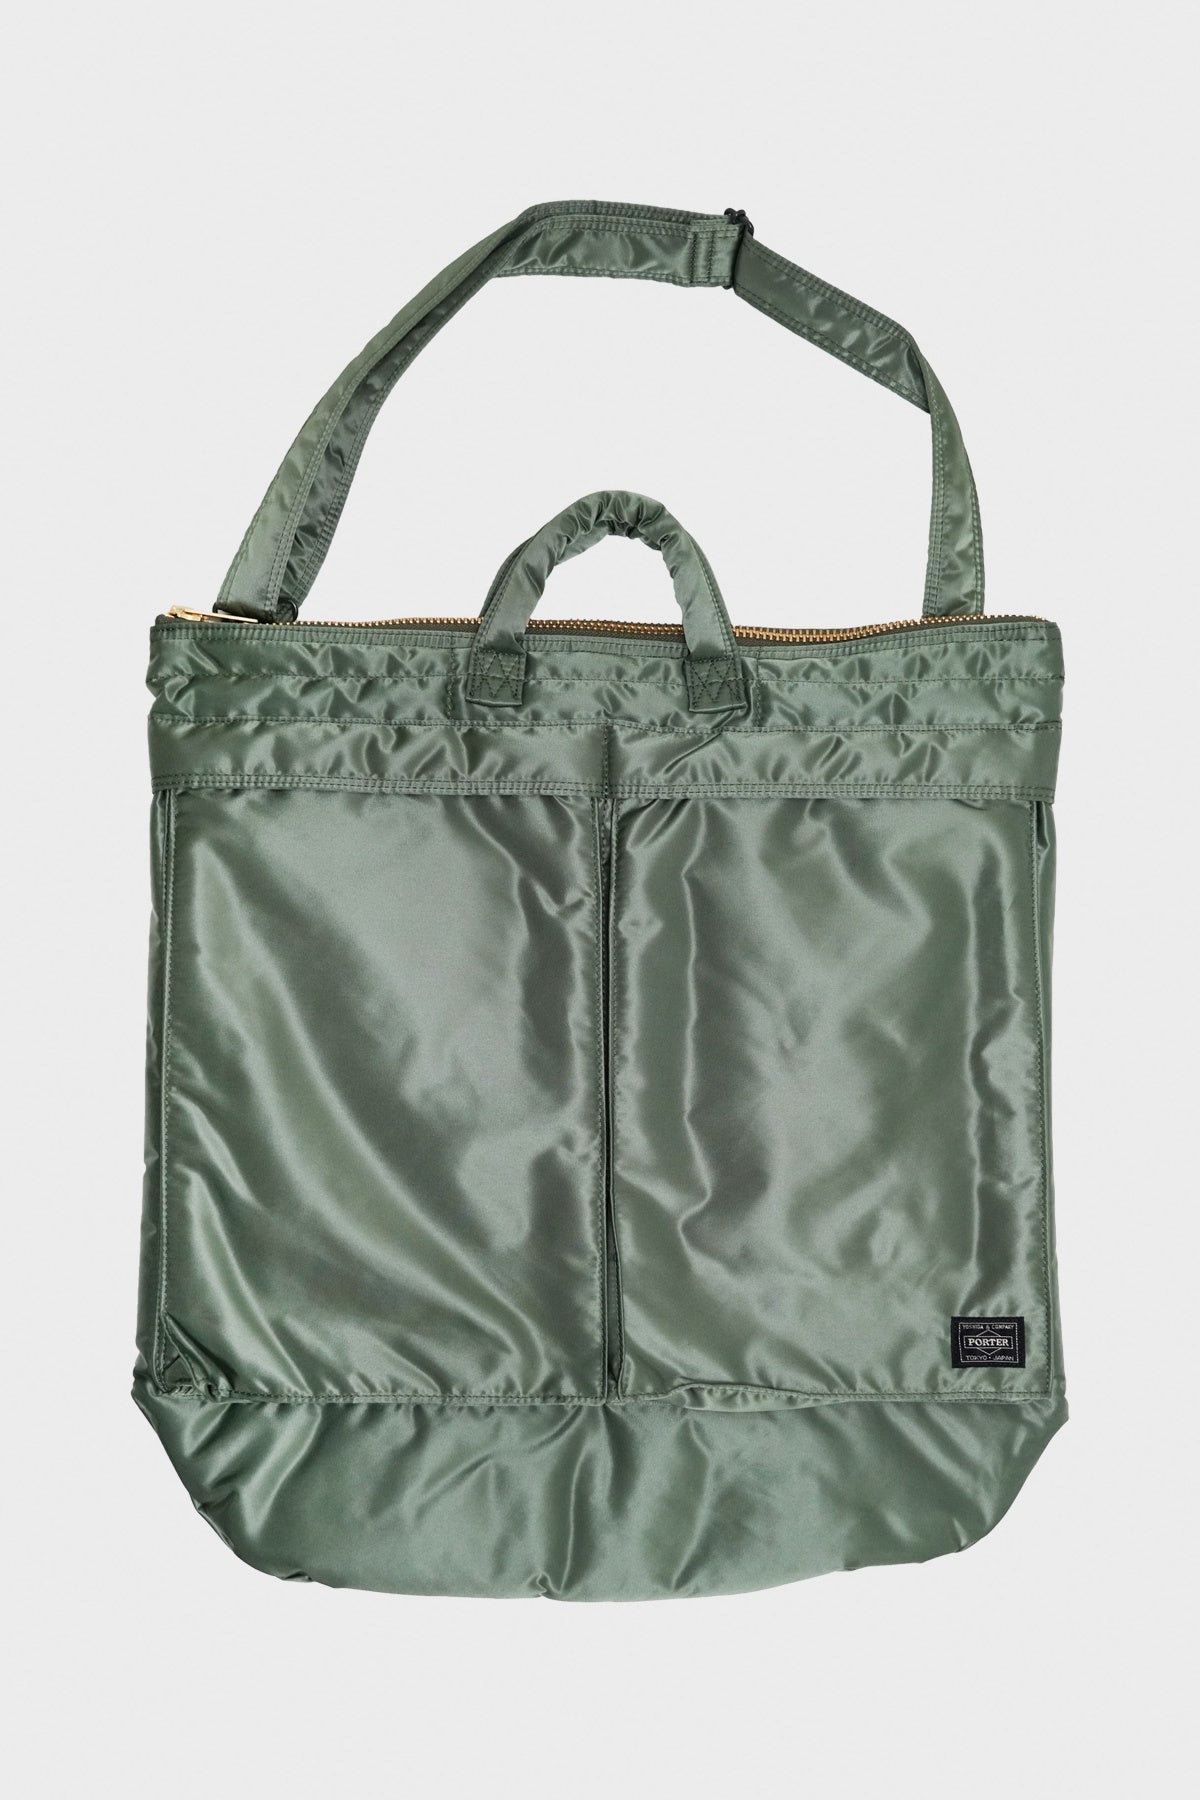 Porter Yoshida and Co - 2 Way Helmet Bag - Sage Green - Canoe Club